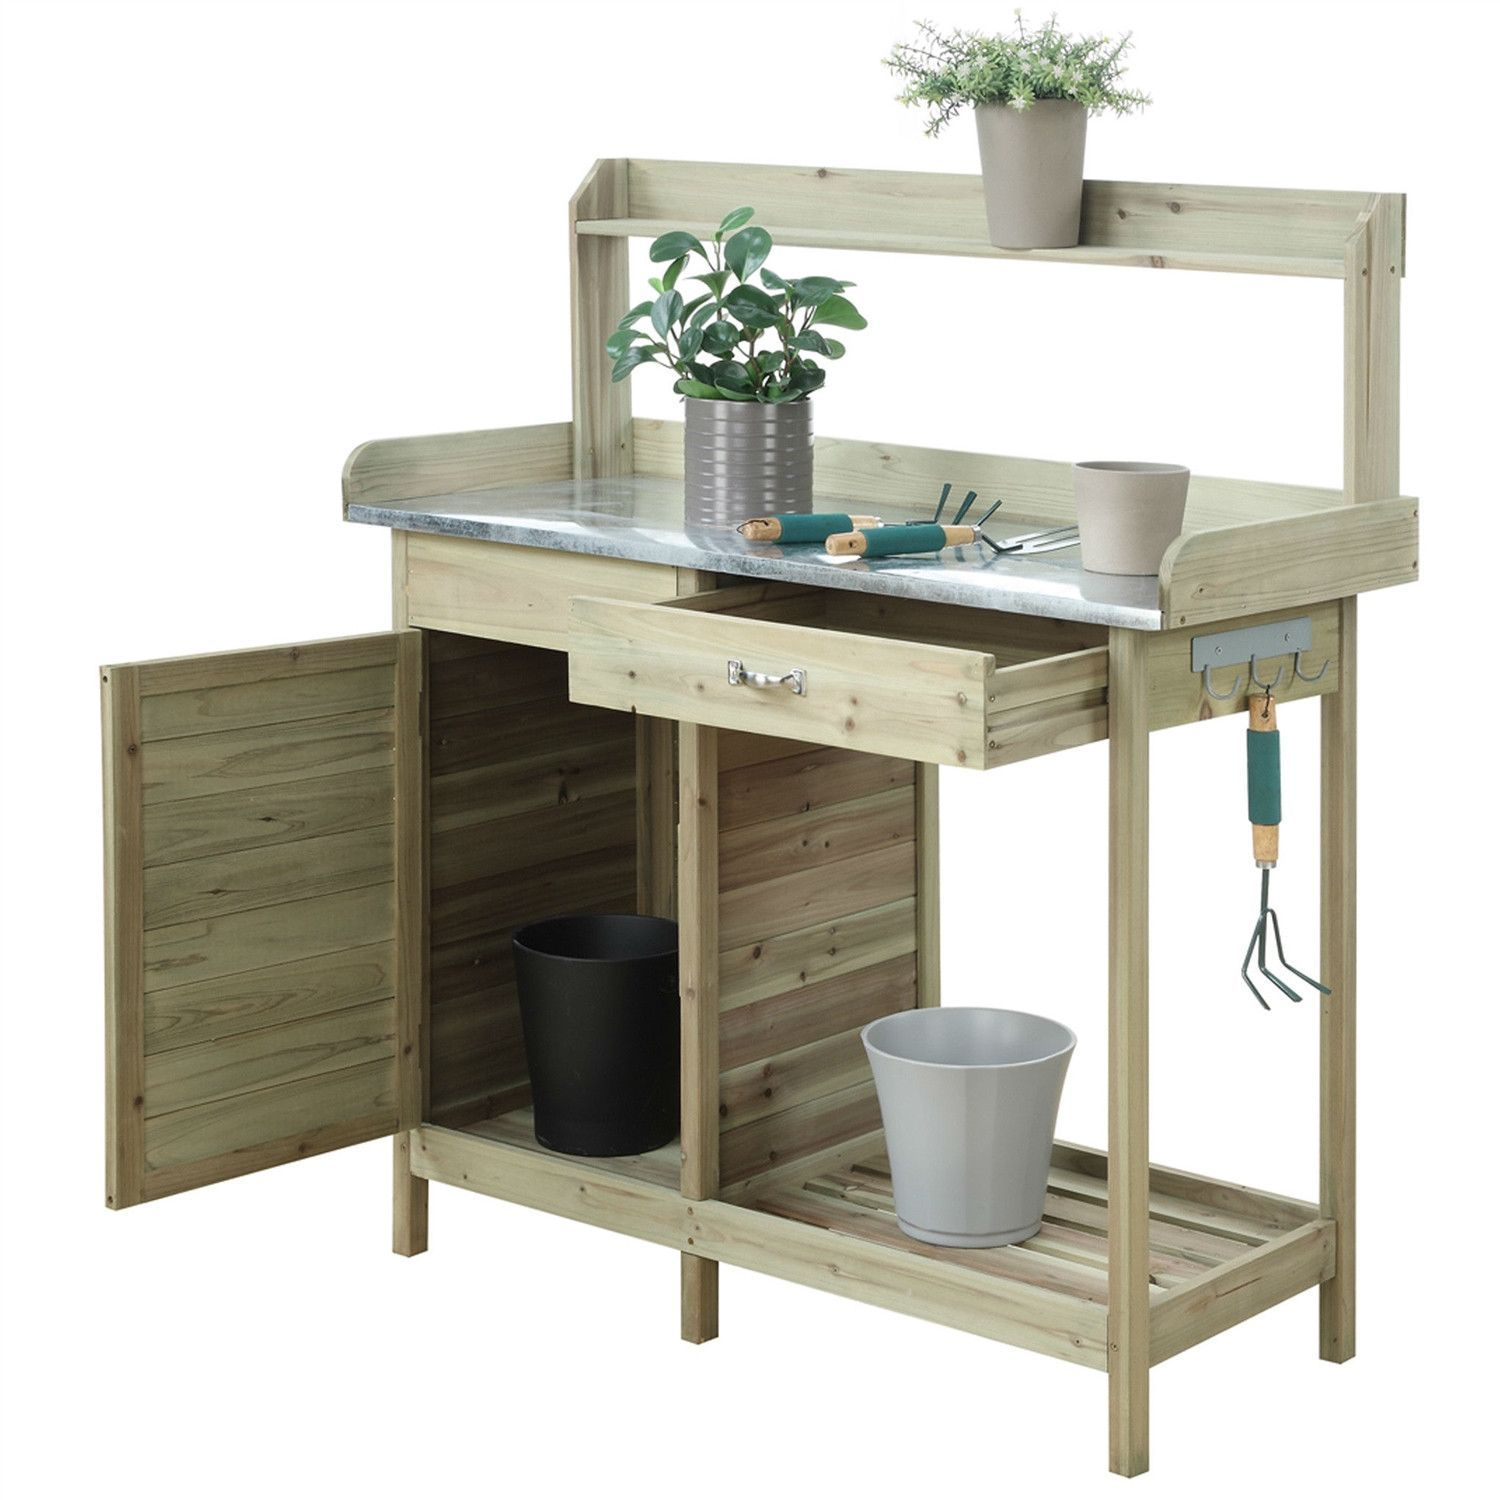 Stainless Steel Table Top Natural Fir Wood Potting Bench With Stainless Steel Table Top